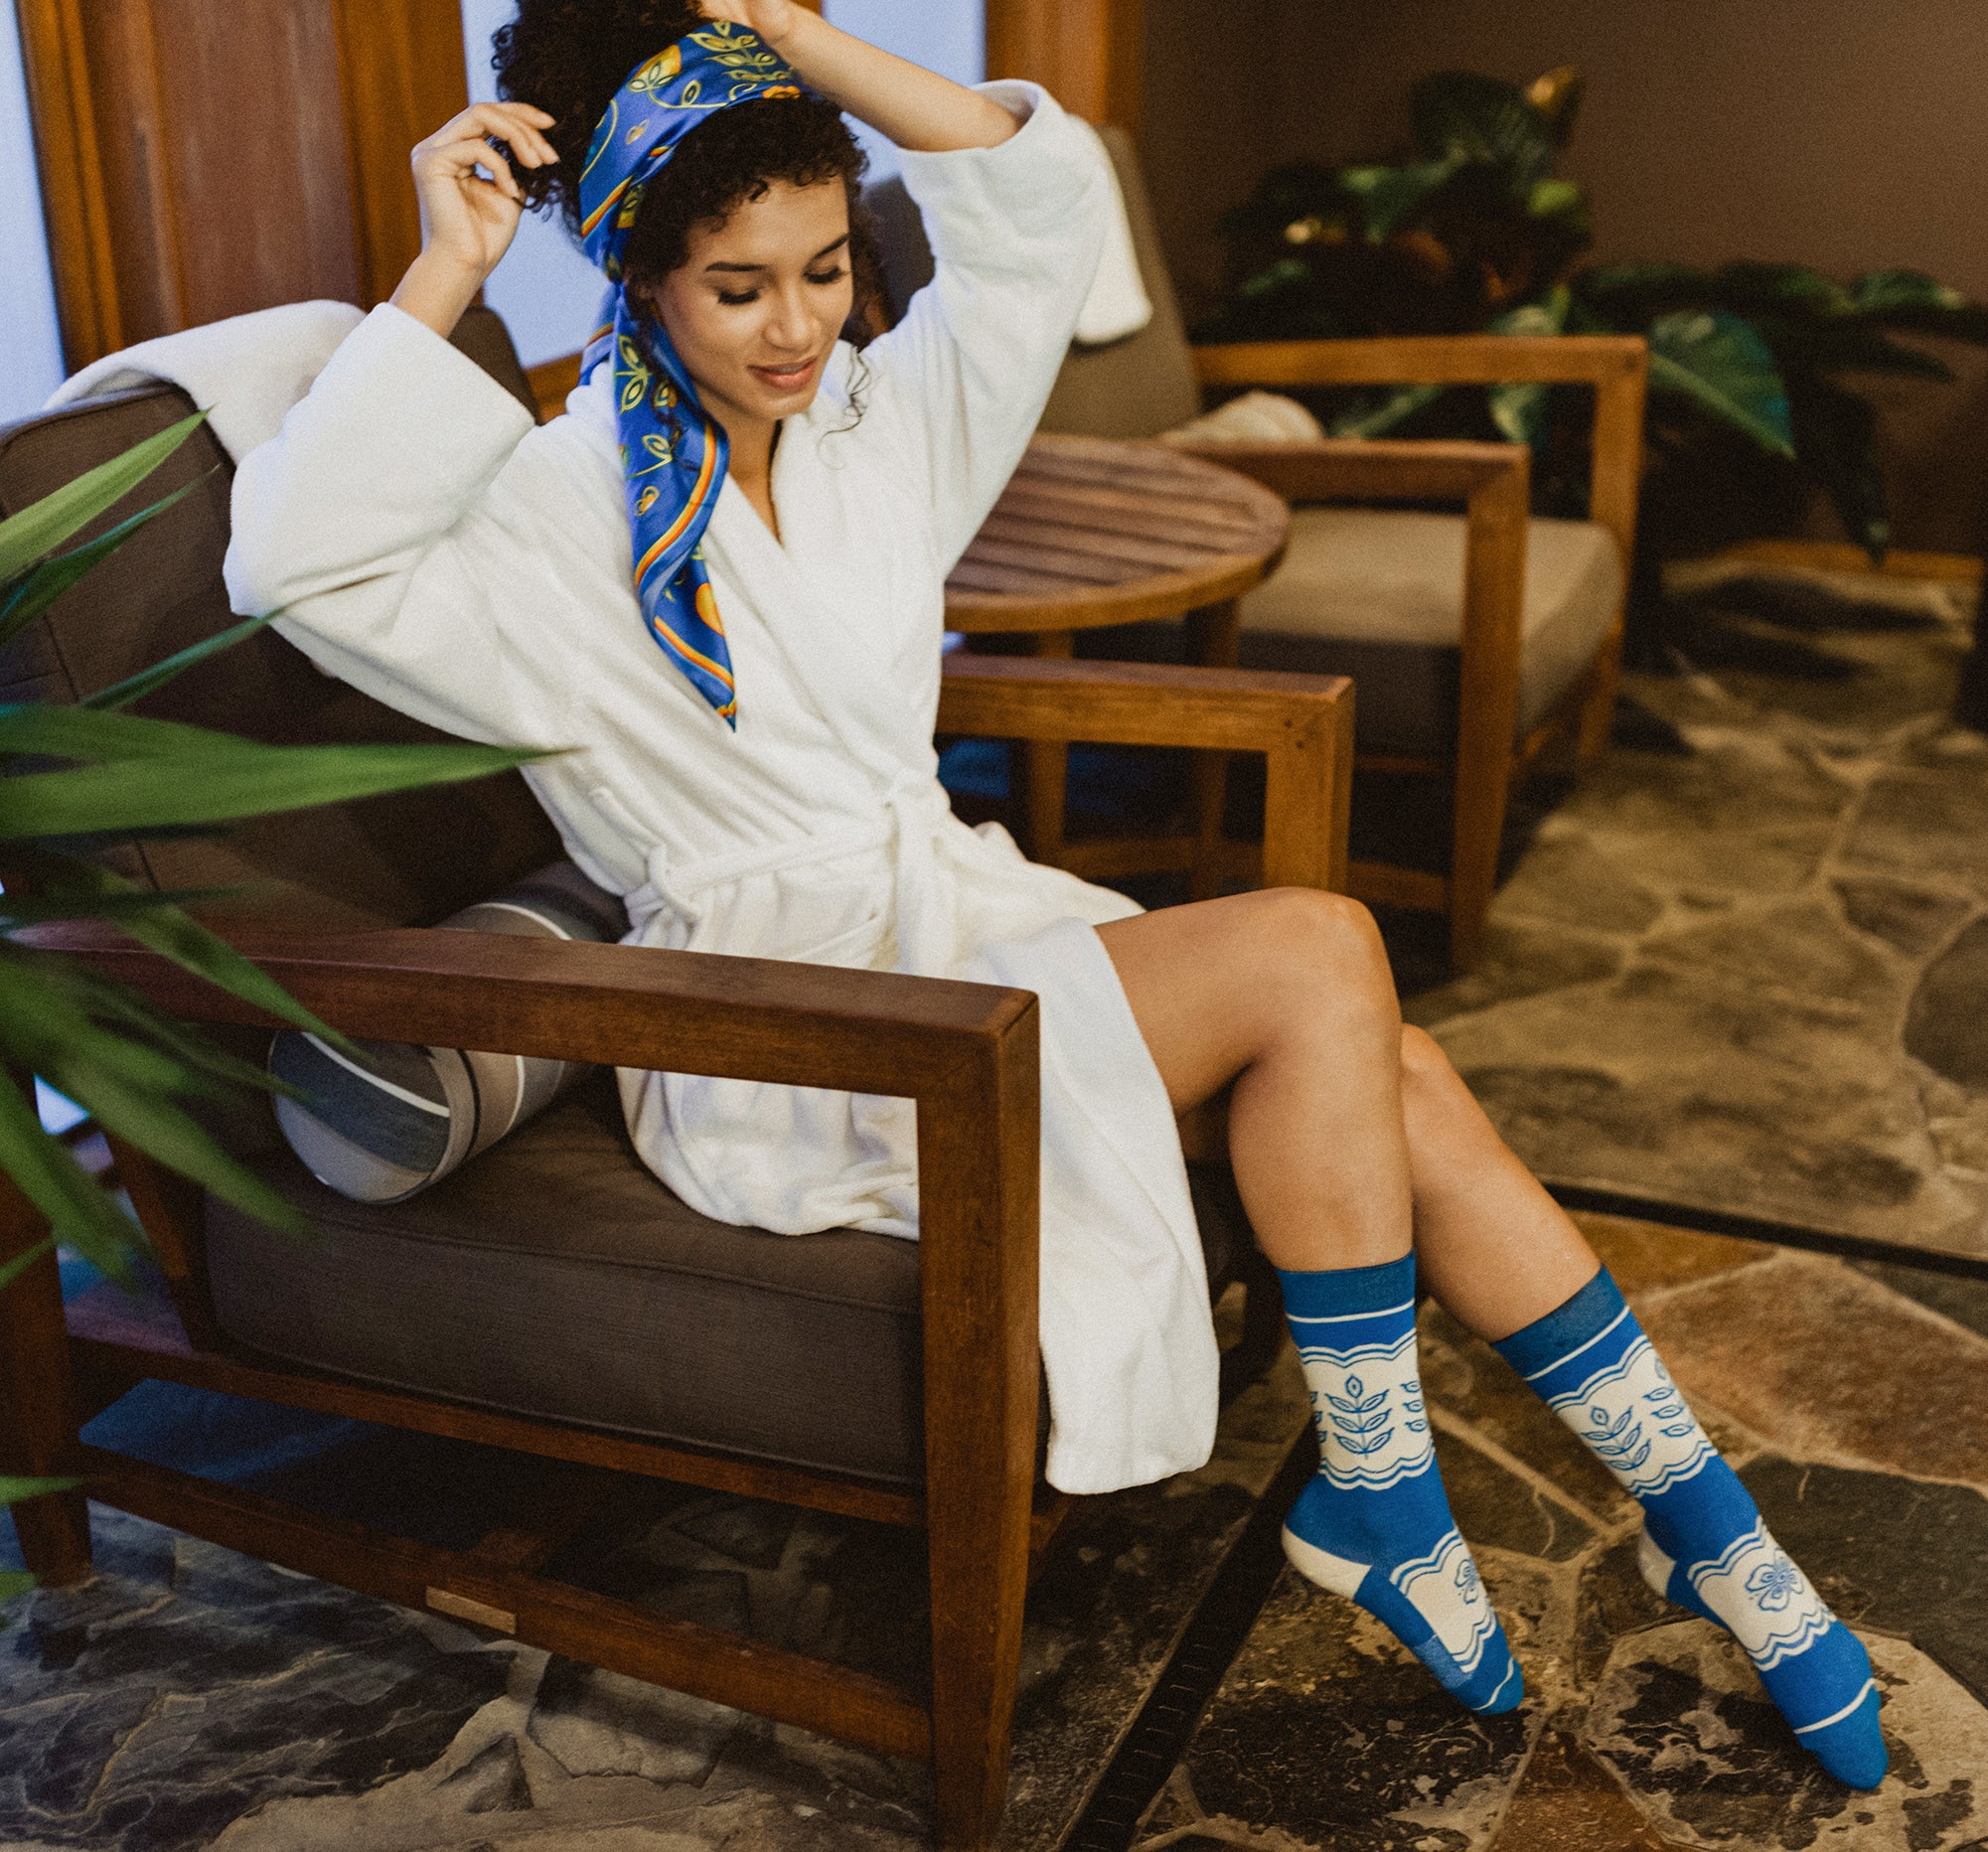 Woman-sits-in-a-white-robe-with-blue-and-white-woodlands-floral-socks-and-blue-green-and-orange-woodlands-floral-silk-scarf-in-hair